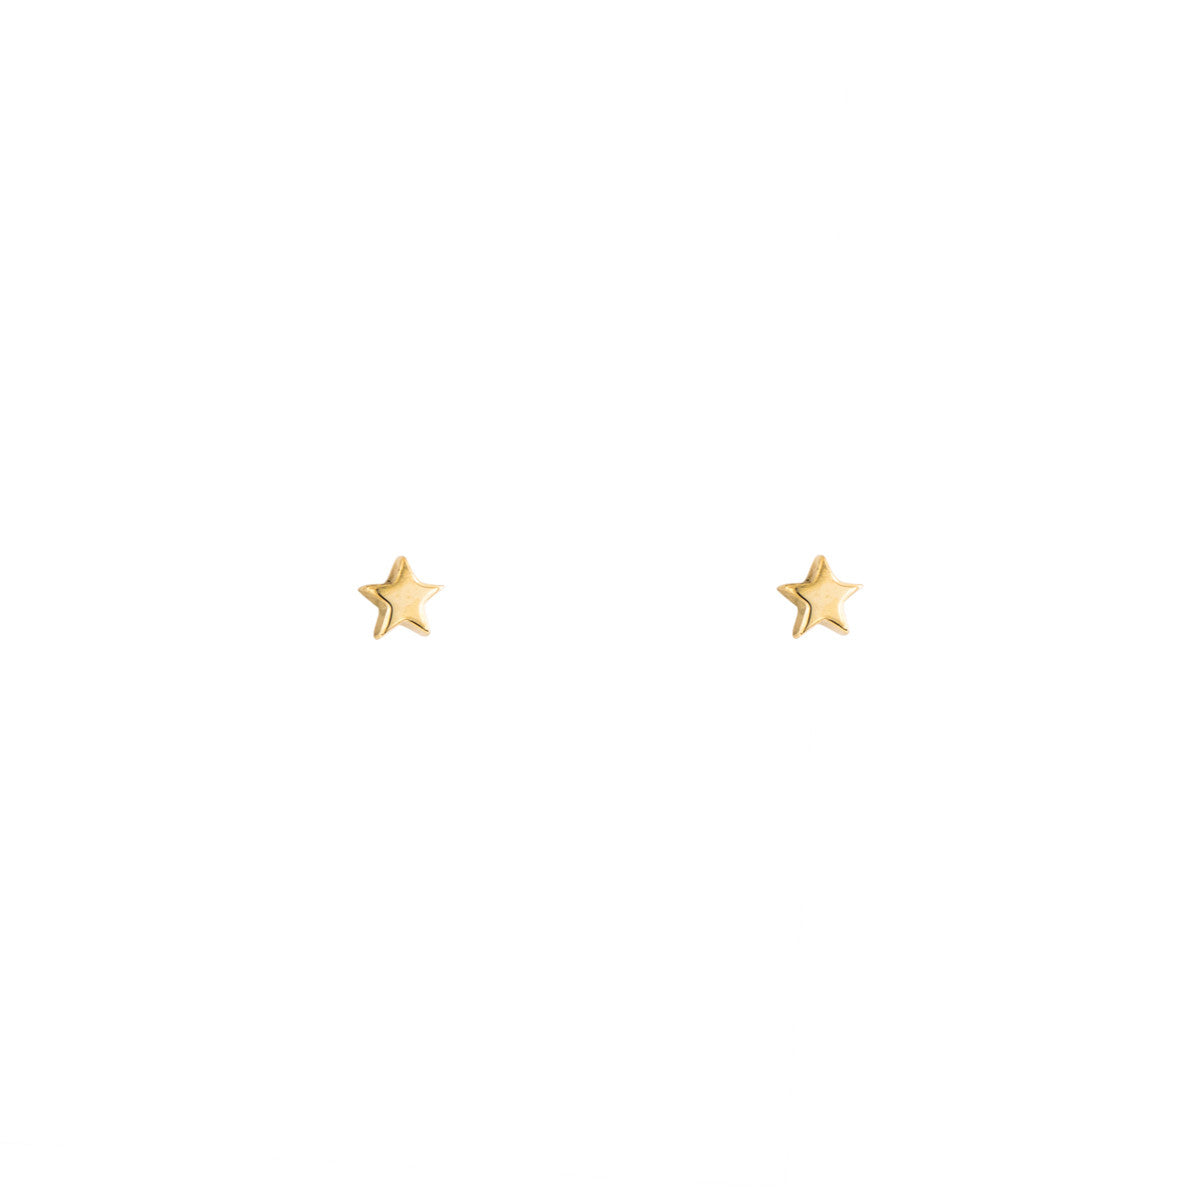 modern gold solid studs pin stud mm minimalist earrings tiny simple